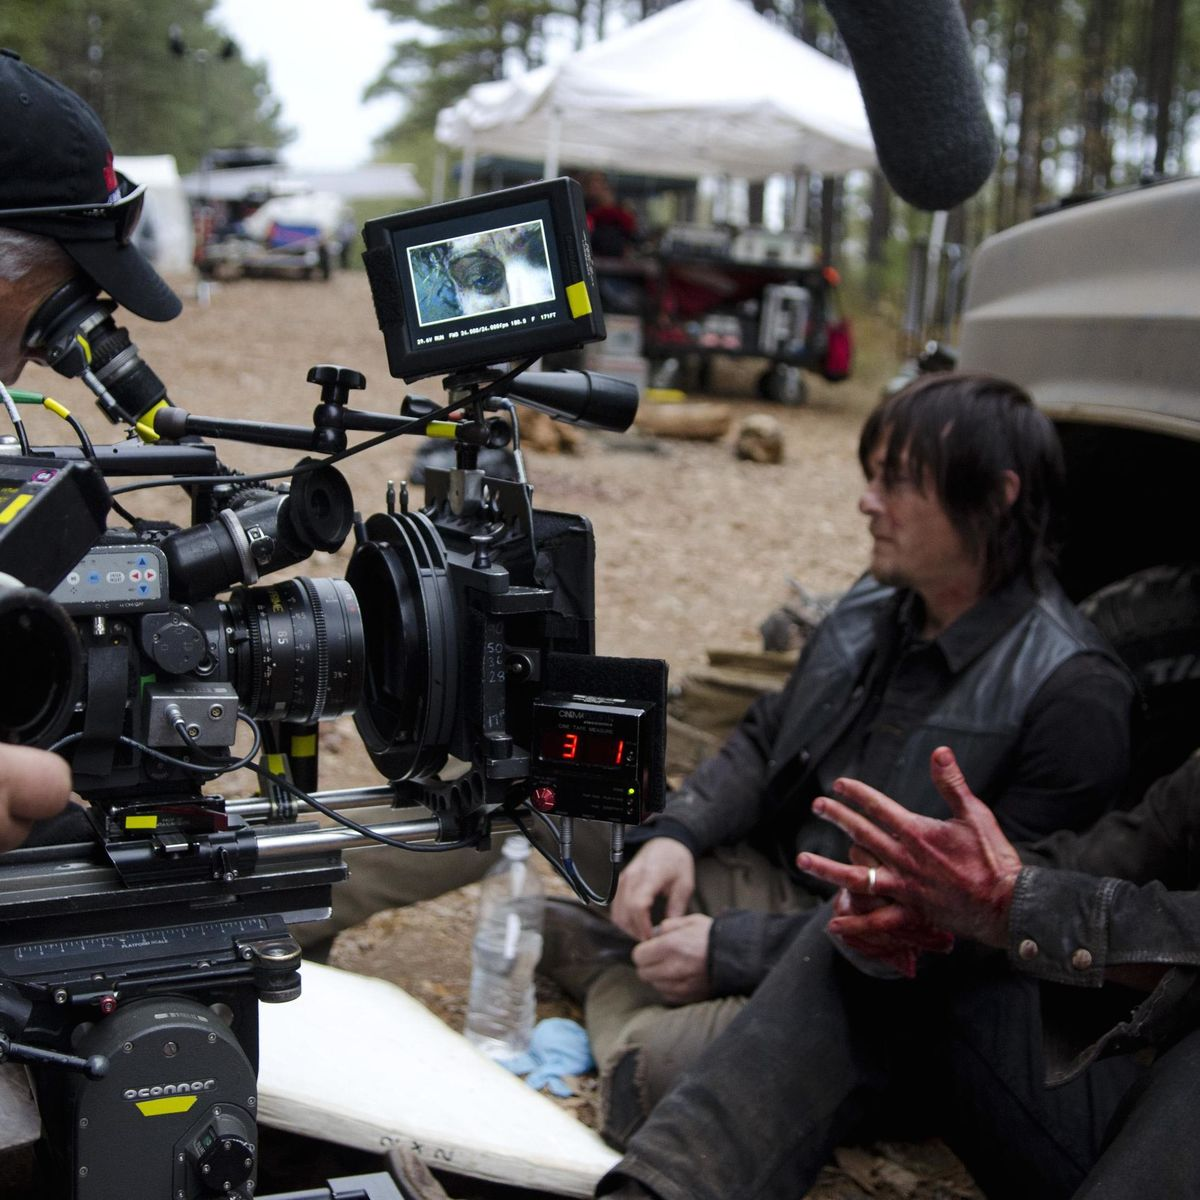 The-Walking-Dead-Season-4-Finale-Previously-Unreleased-Promotional-and-BTS-Photos-38_FULL.jpg